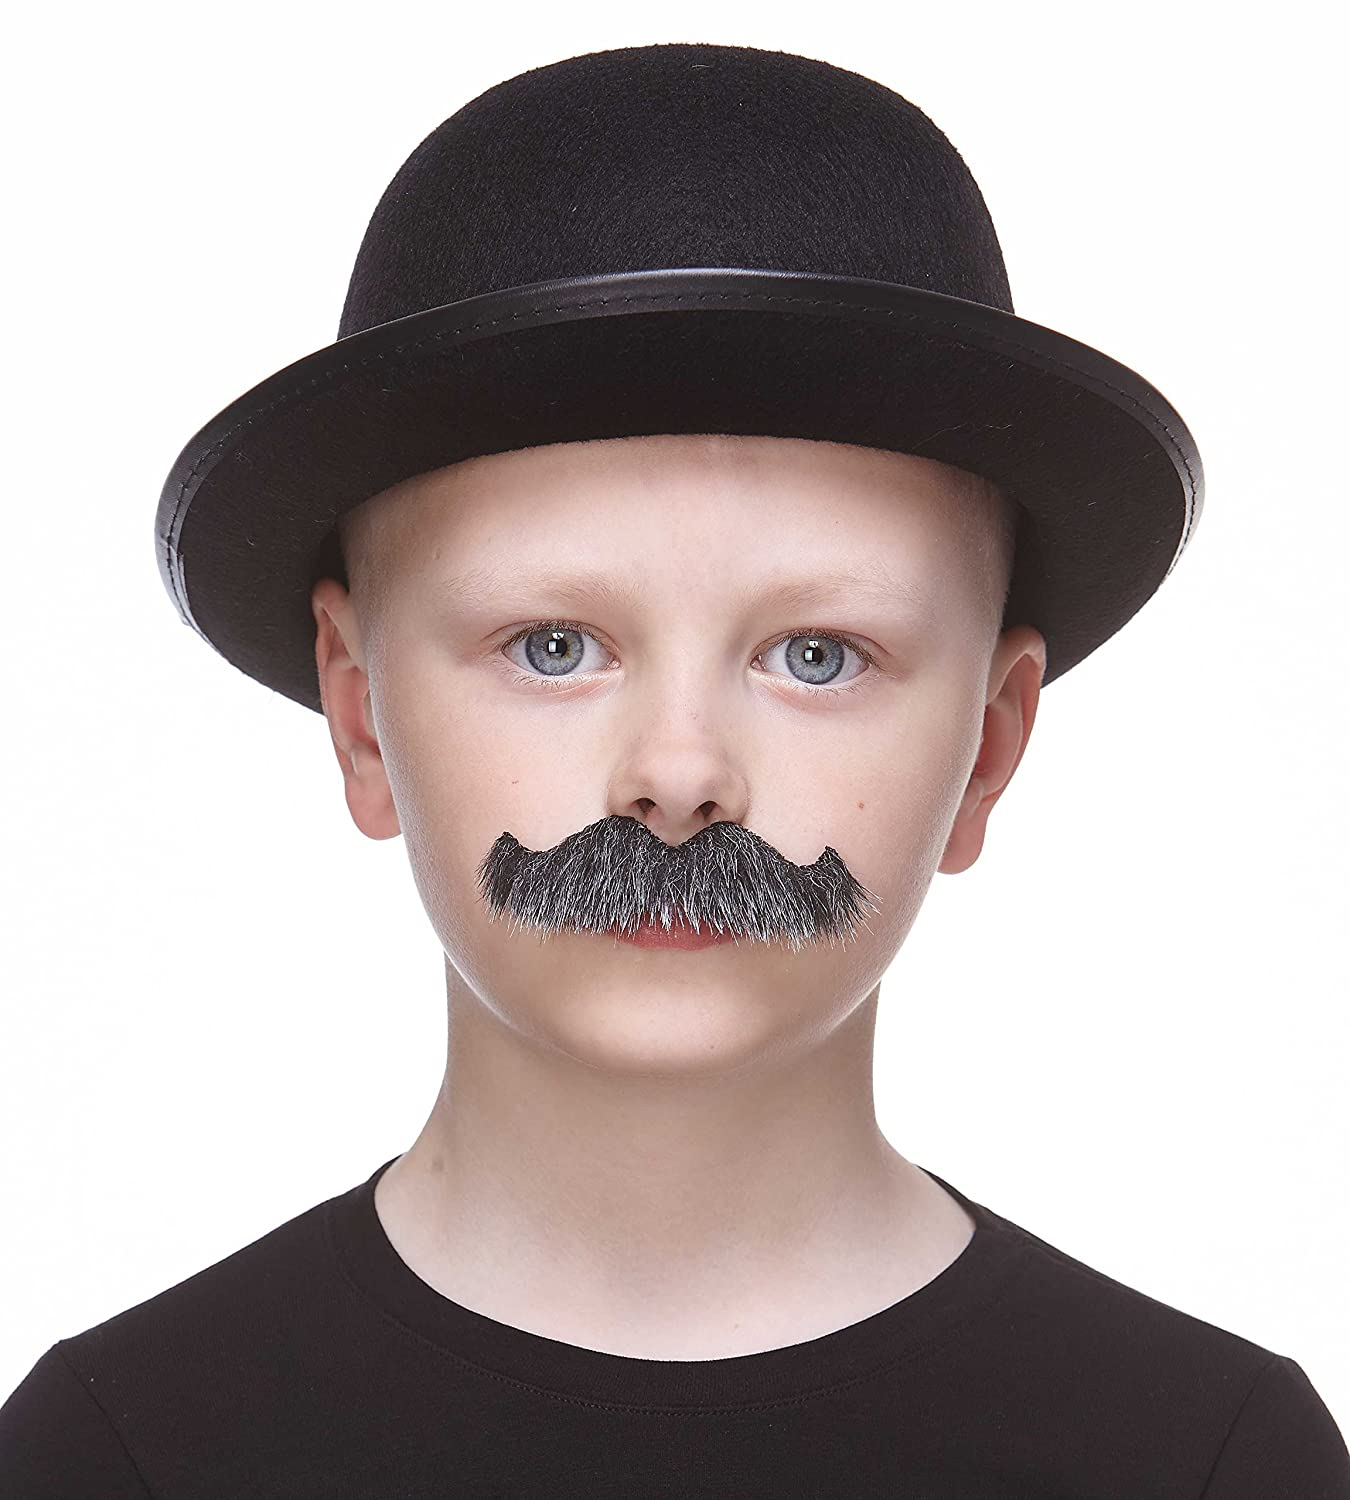 Mustaches Fake Mustache Self Adhesive Costume Accessory for Kids Novelty Small Rocking Grandpas False Facial Hair